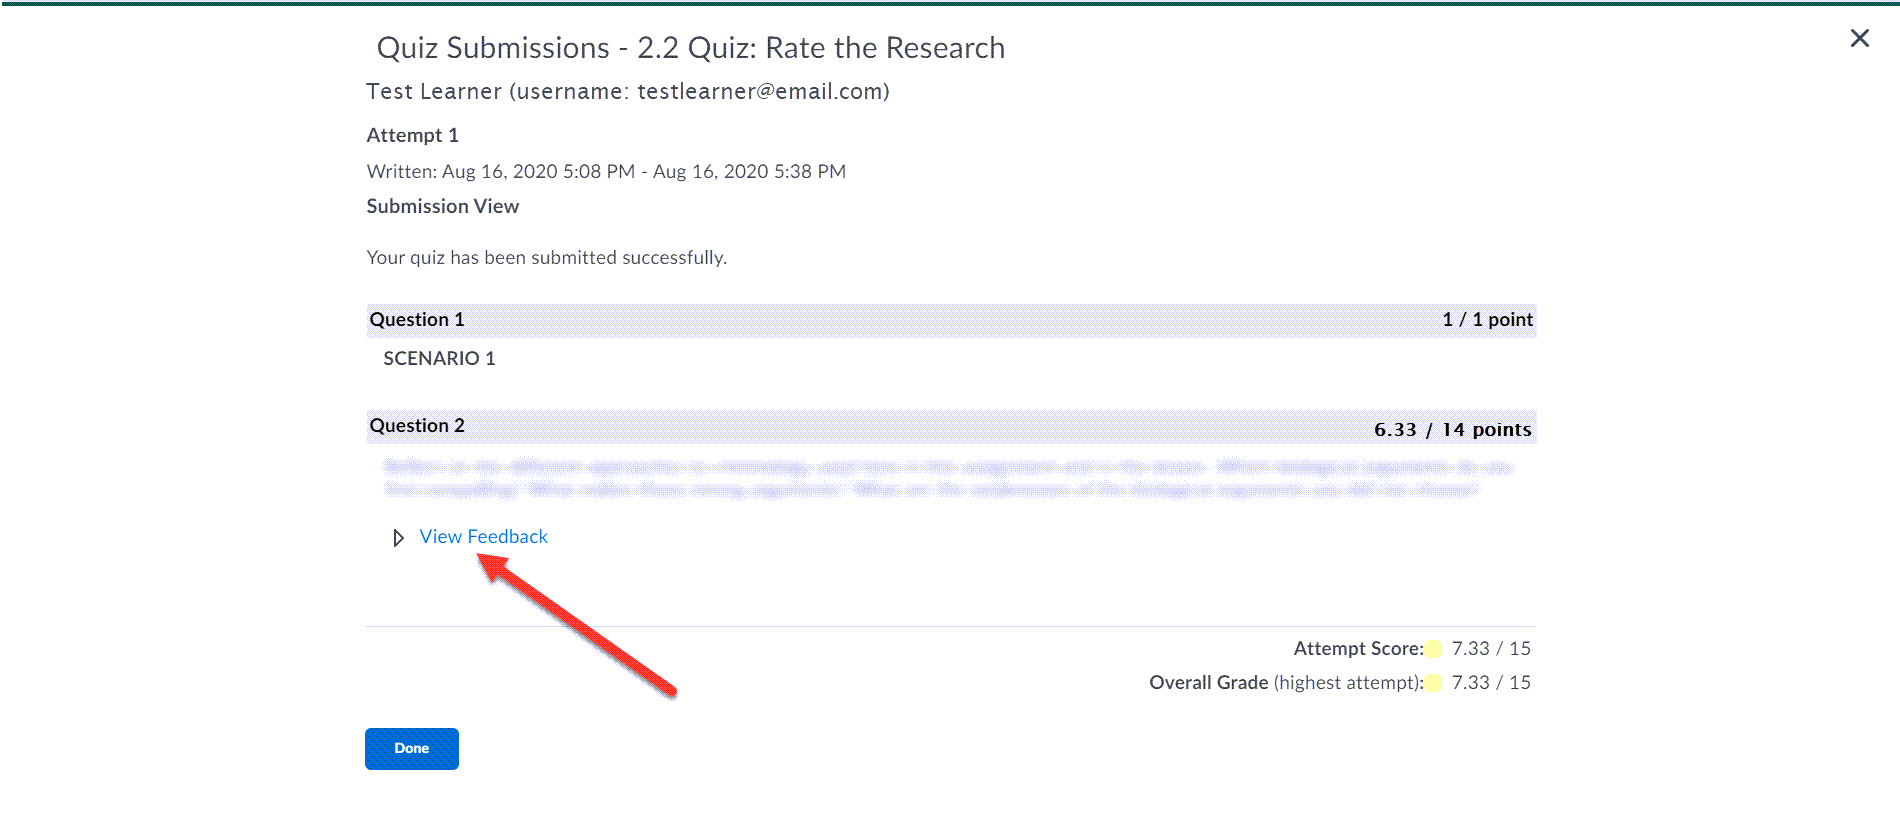 Quiz Submission details are displayed for the 2.2 Quiz Rate the Research. A modified image shows the individual questions and responses. Below the response of question 2, the View Feedback drop-down is shown with an arrow pointing to it.